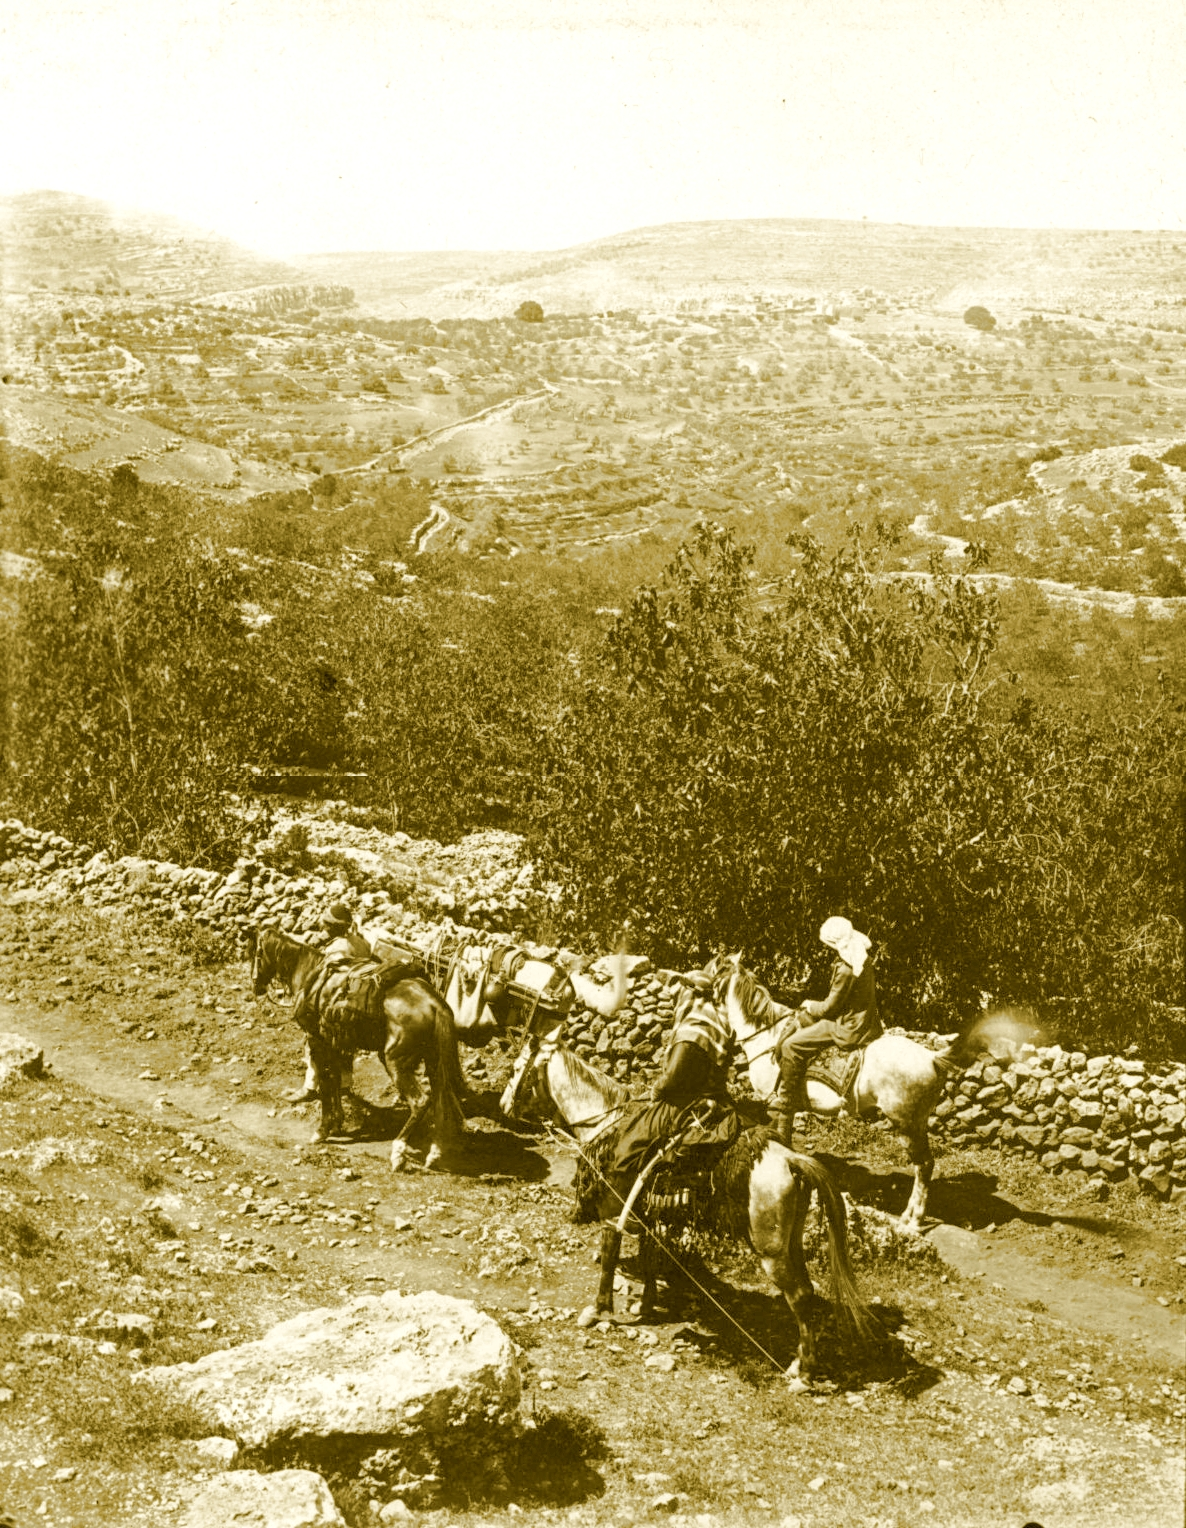 Ramallah - رام الله : RAMALLAH - The road from Ramallah, Al-Bireh to Nablus (North of Beitin) (Per Reem Ackall)